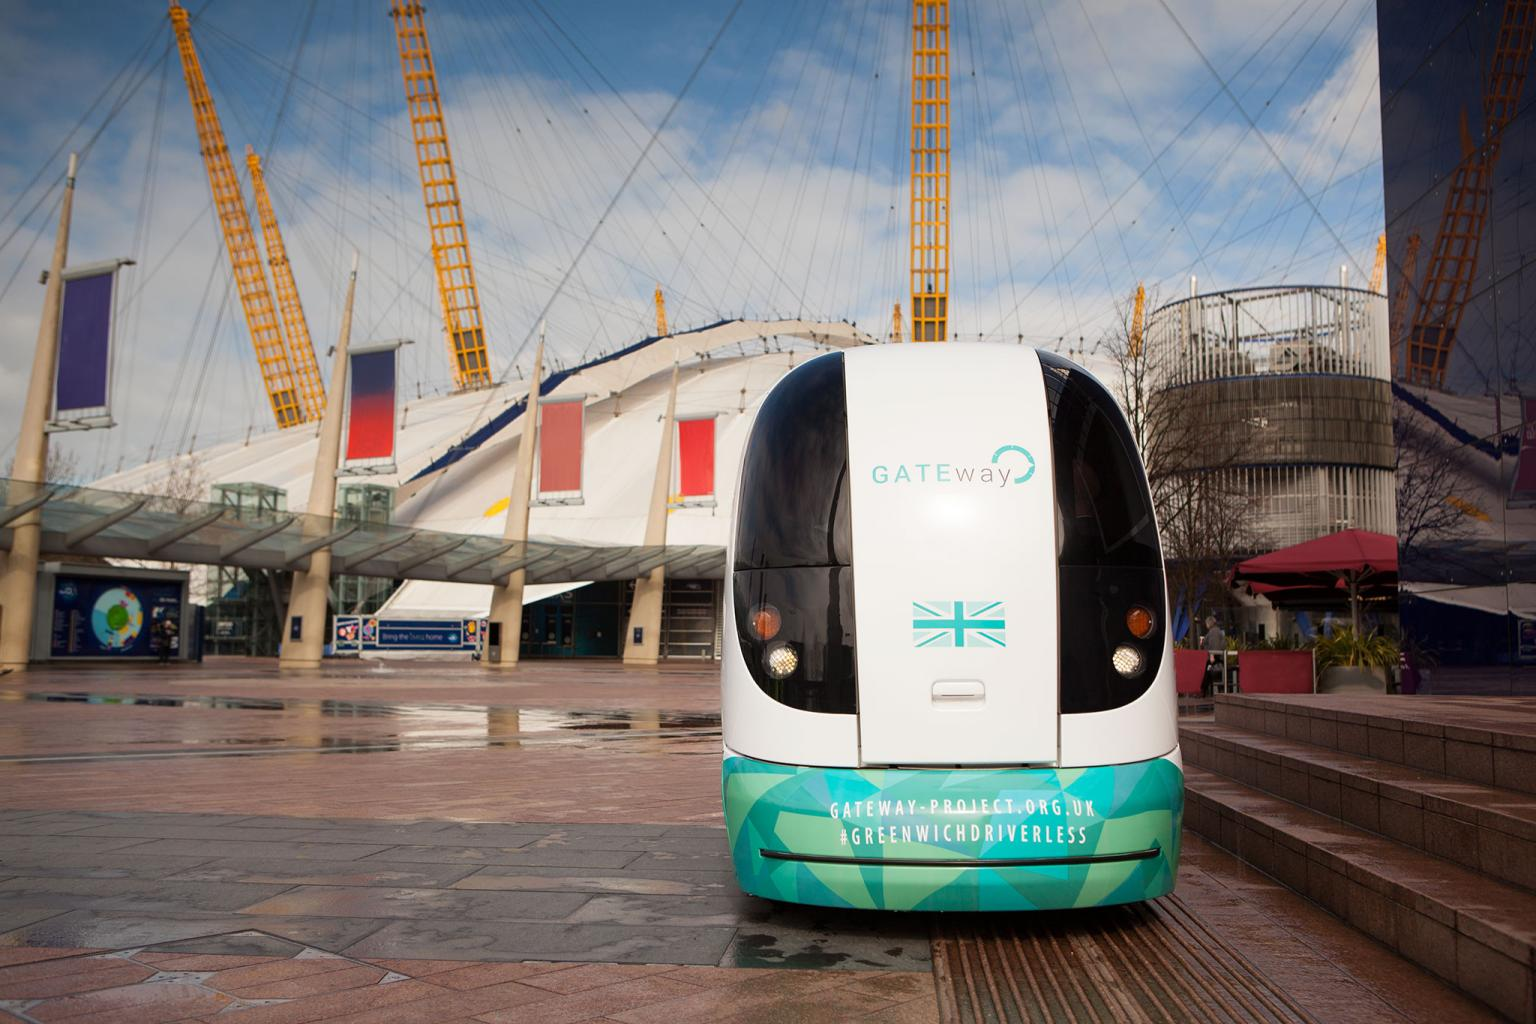 The autonomous 'pods' used in the Greenwich trial look less like conventional vehicles